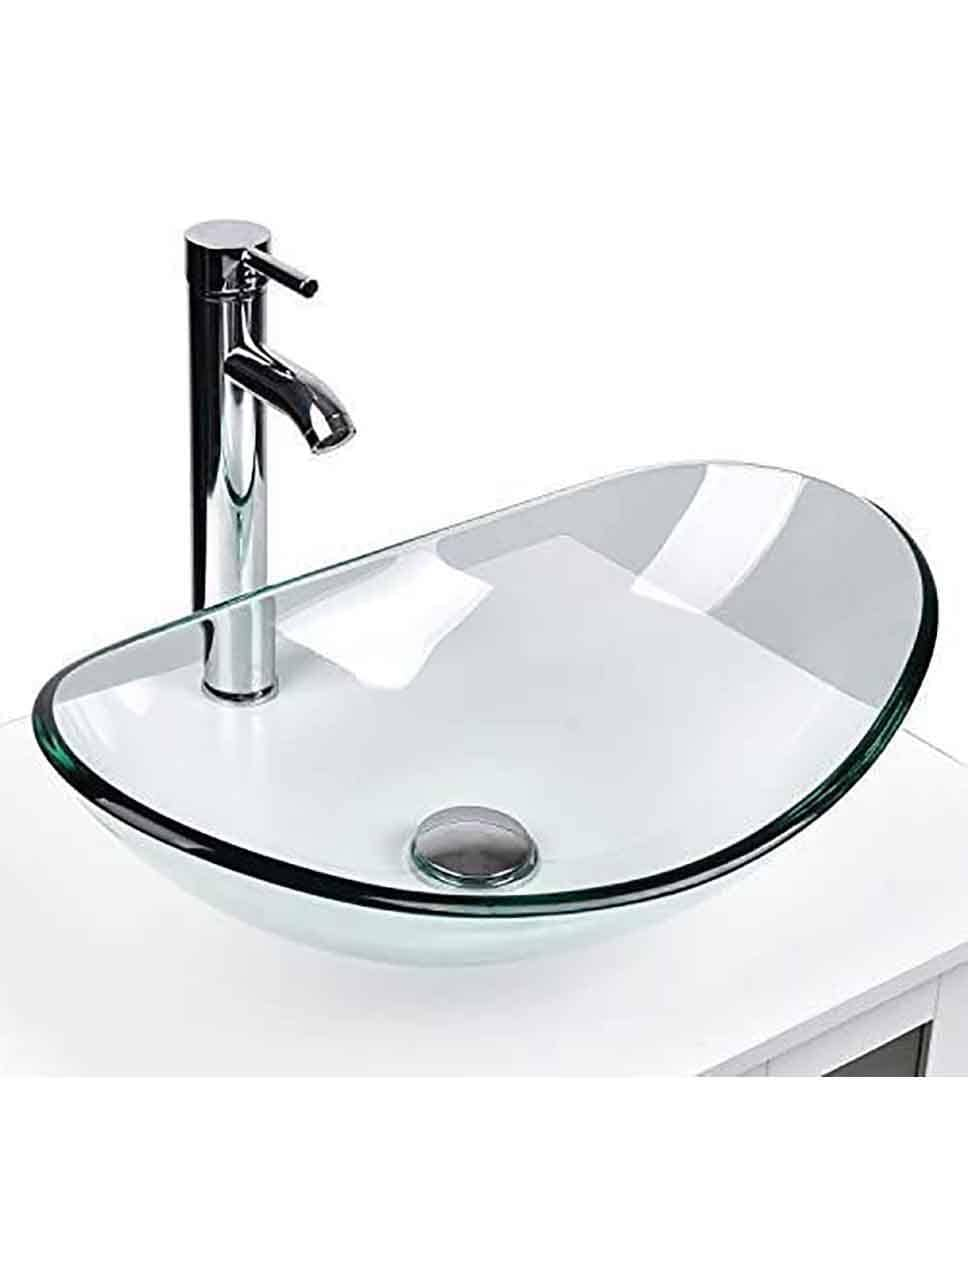 EUR Copy of Modern Light Tempered Glass Vessel Sink(Ingot Shape)